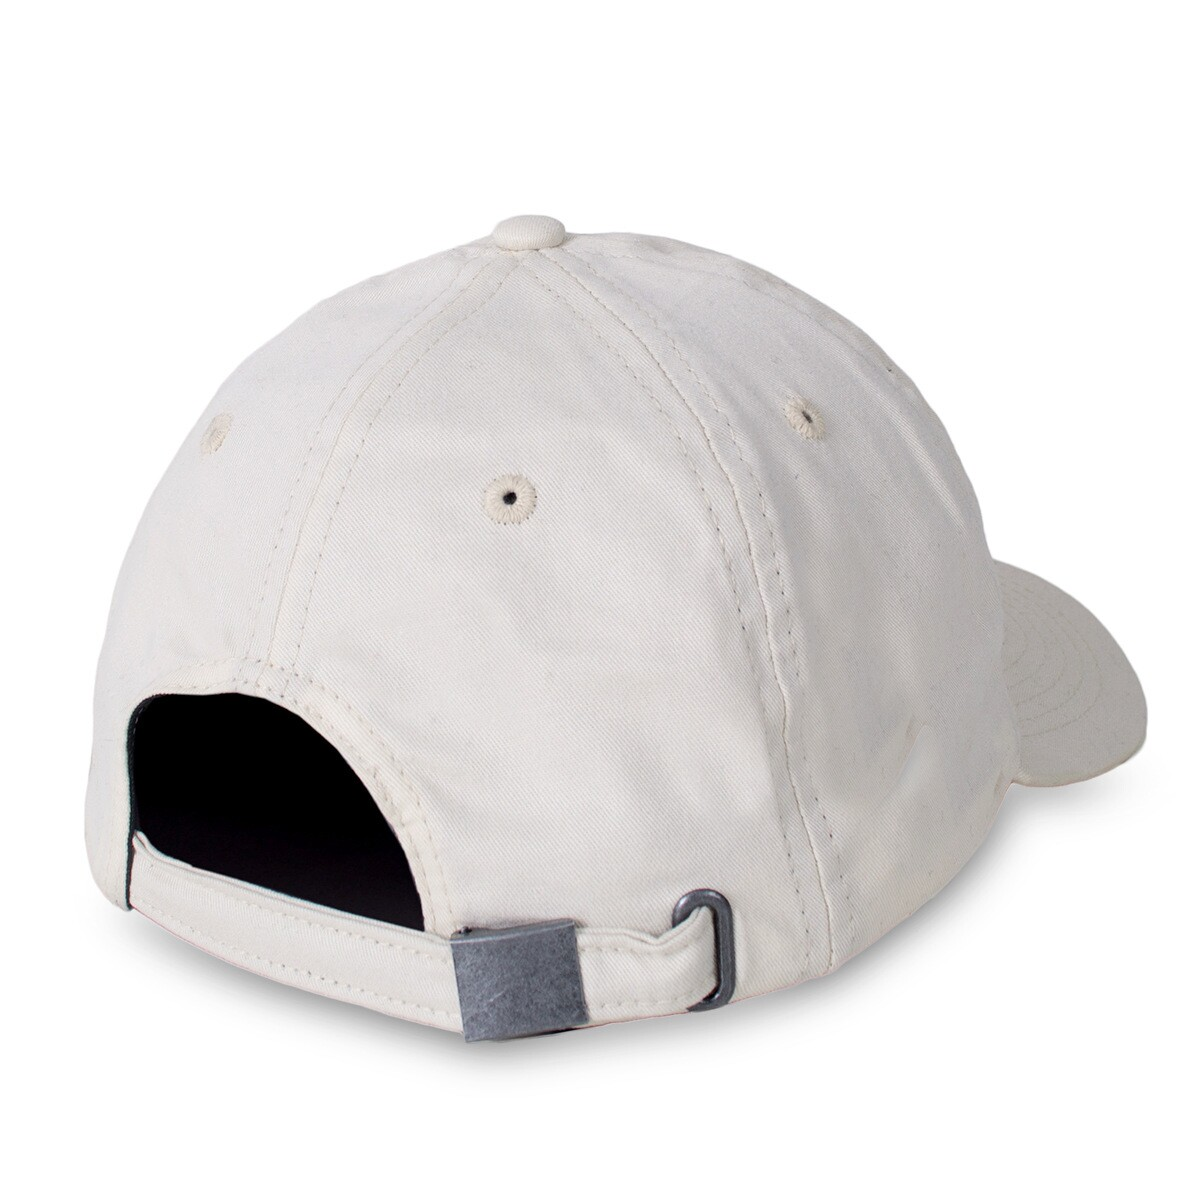 Boné Dep Strapback Light Dad Hat Aba Curva Bege